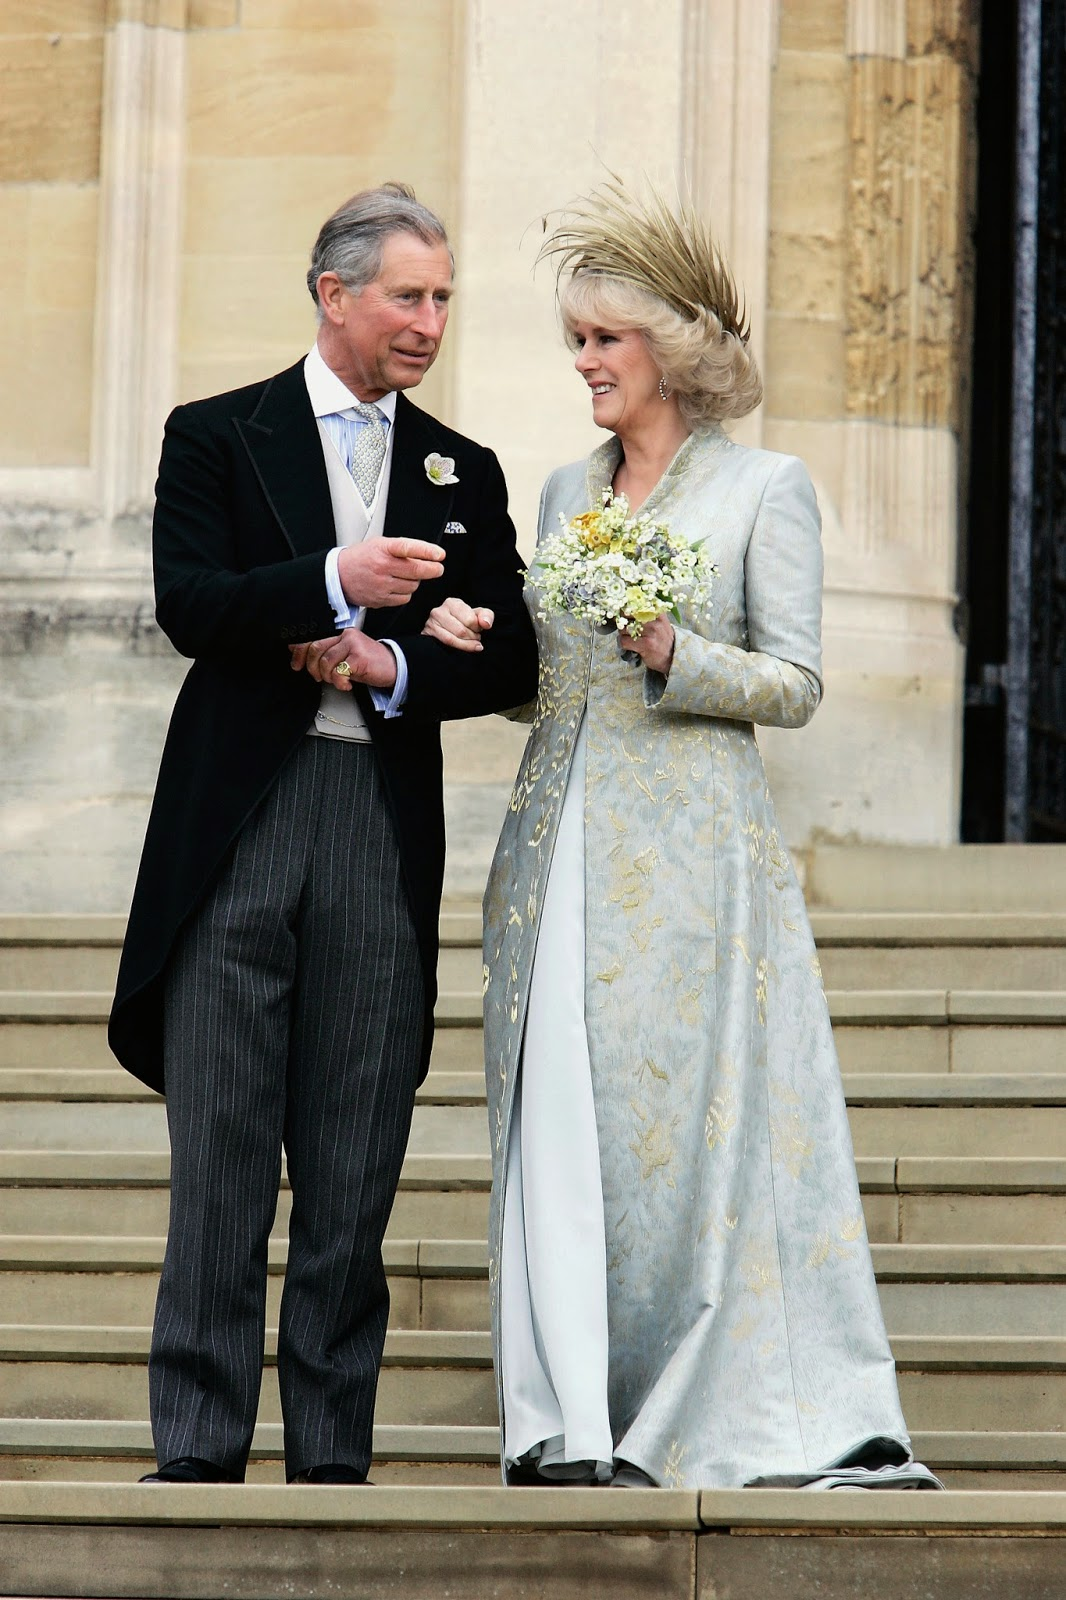 Prince Charles and Camilla Parker Wedding